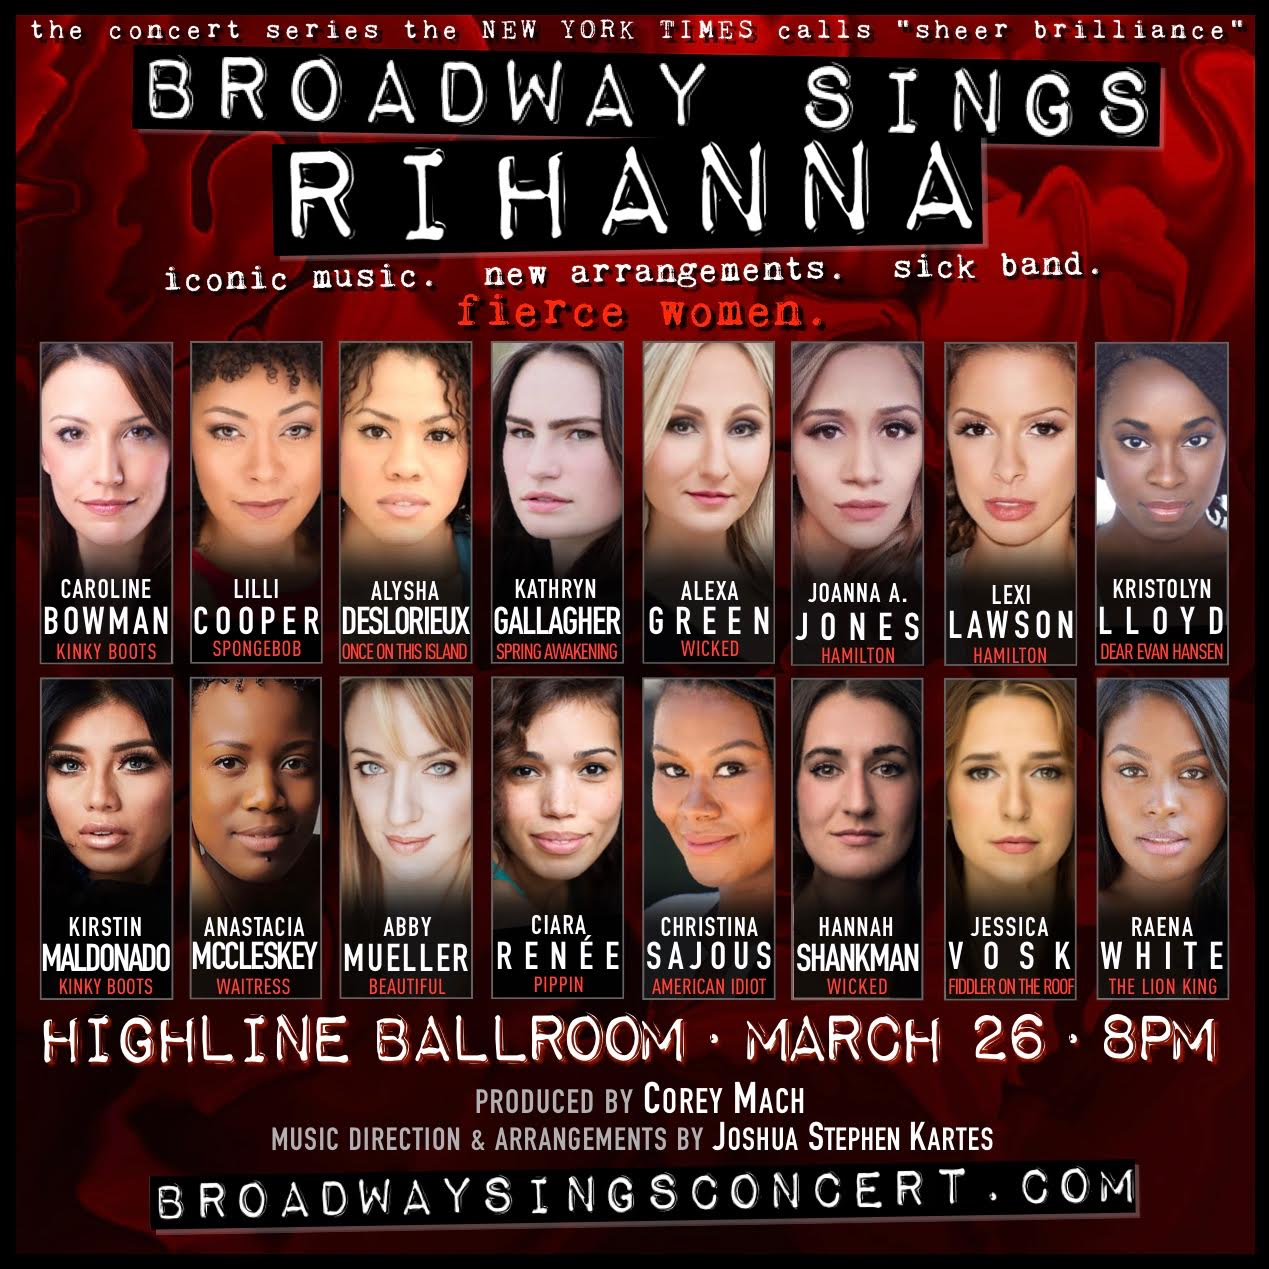 new_bwaysings_poster.jpg